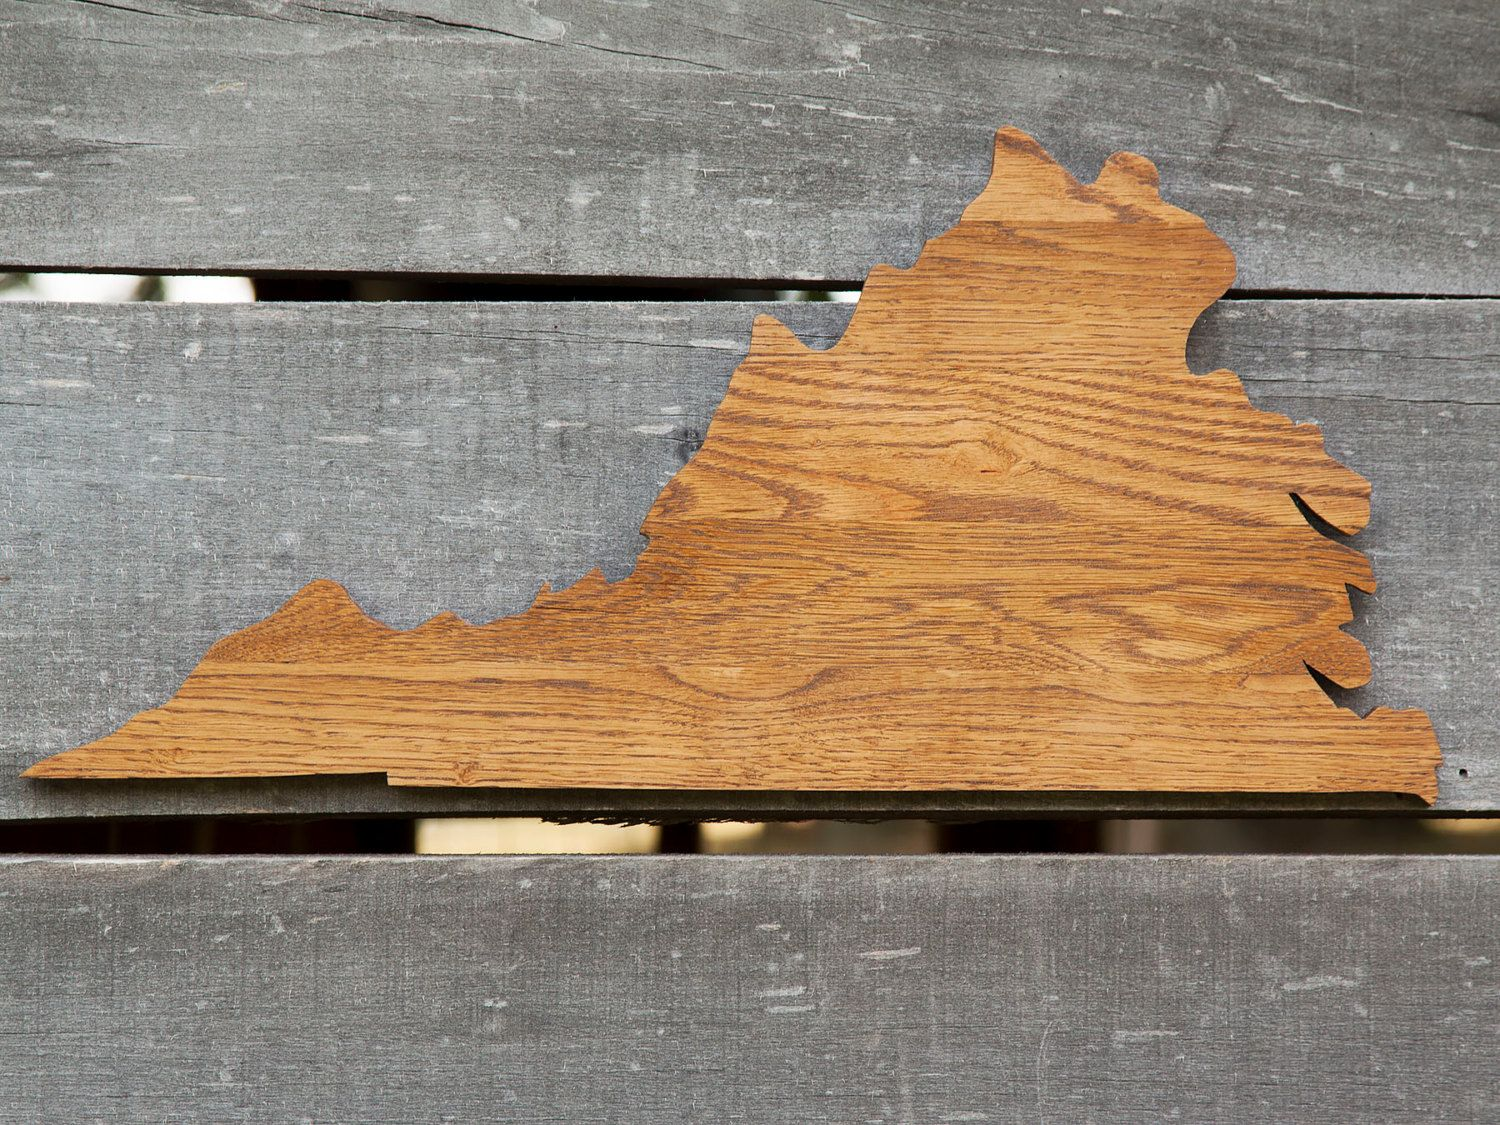 Virginia State Shape Wood Cutout Sign Wall Art Handcrafted From Re Purposed Oak Flooring 10x21 In Wedding Count Silhouette Wall Art Wood Cutouts State Shapes